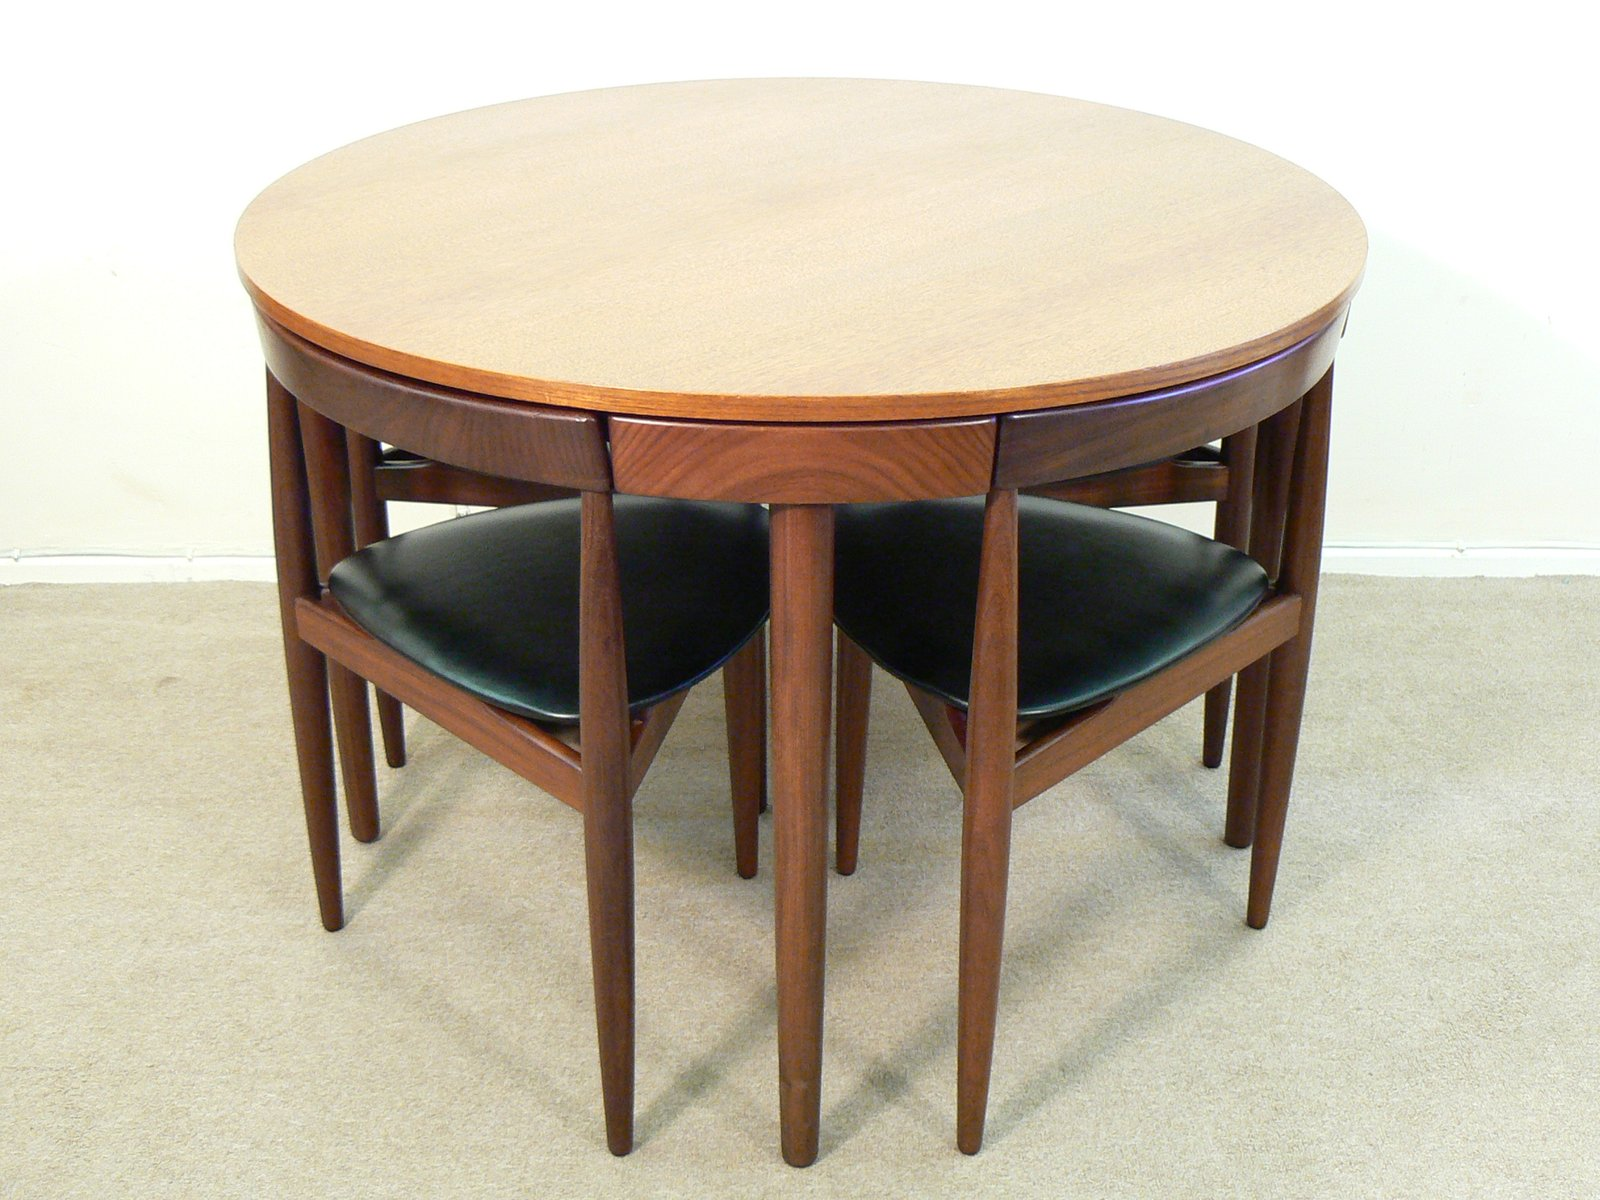 Dining Table Set By Hans Olsen For Frem Rojle, 1960s For Sale At Pamono